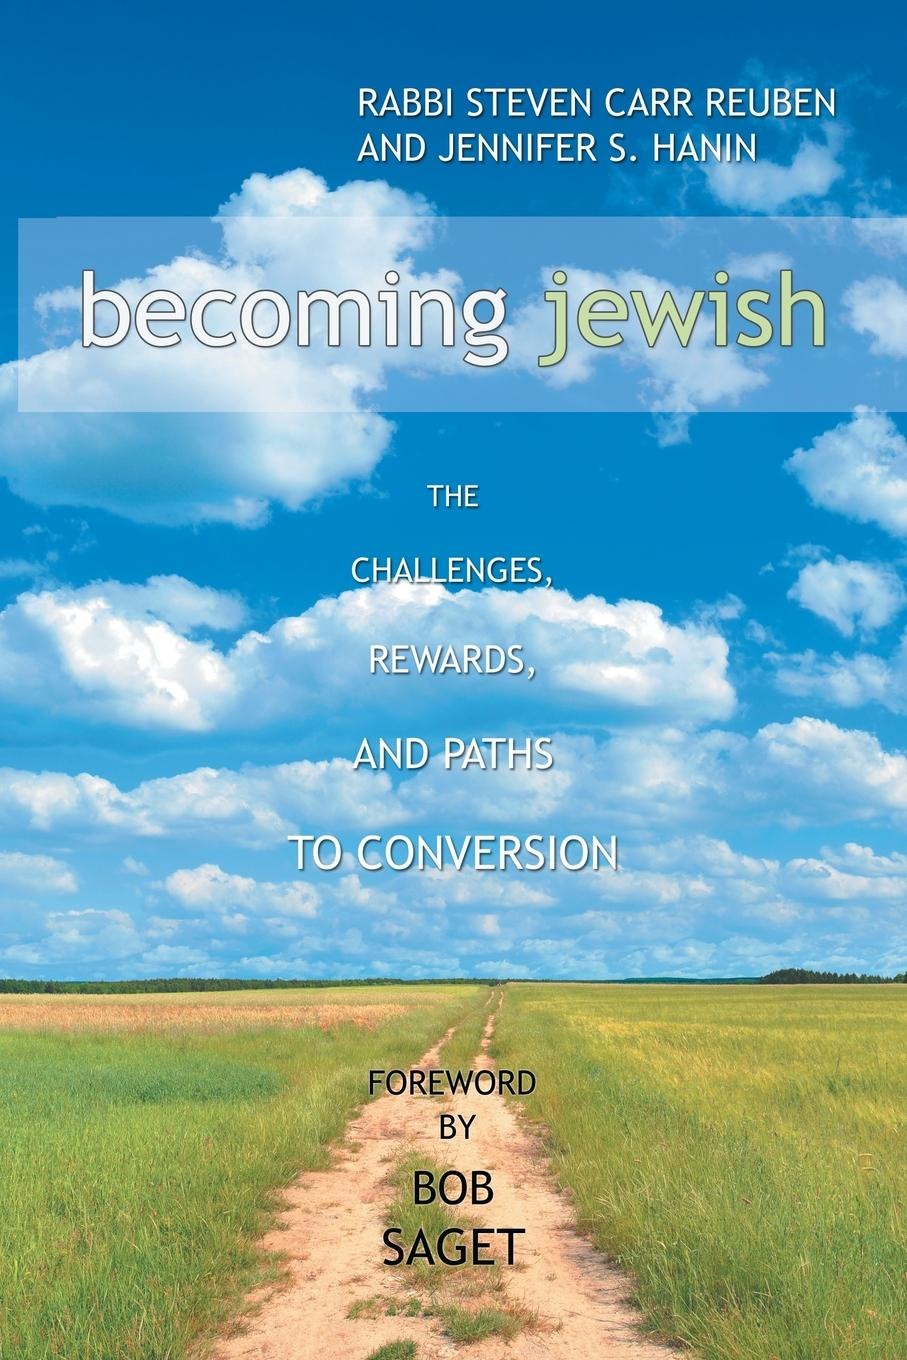 Rabbi Steven Carr Reuben, Jennifer S. Hanin Becoming Jewish. The Challenges, Rewards, and Paths to Conversion will irons the possibilities of oneness doorways to life s deeper meaning wonder and joy